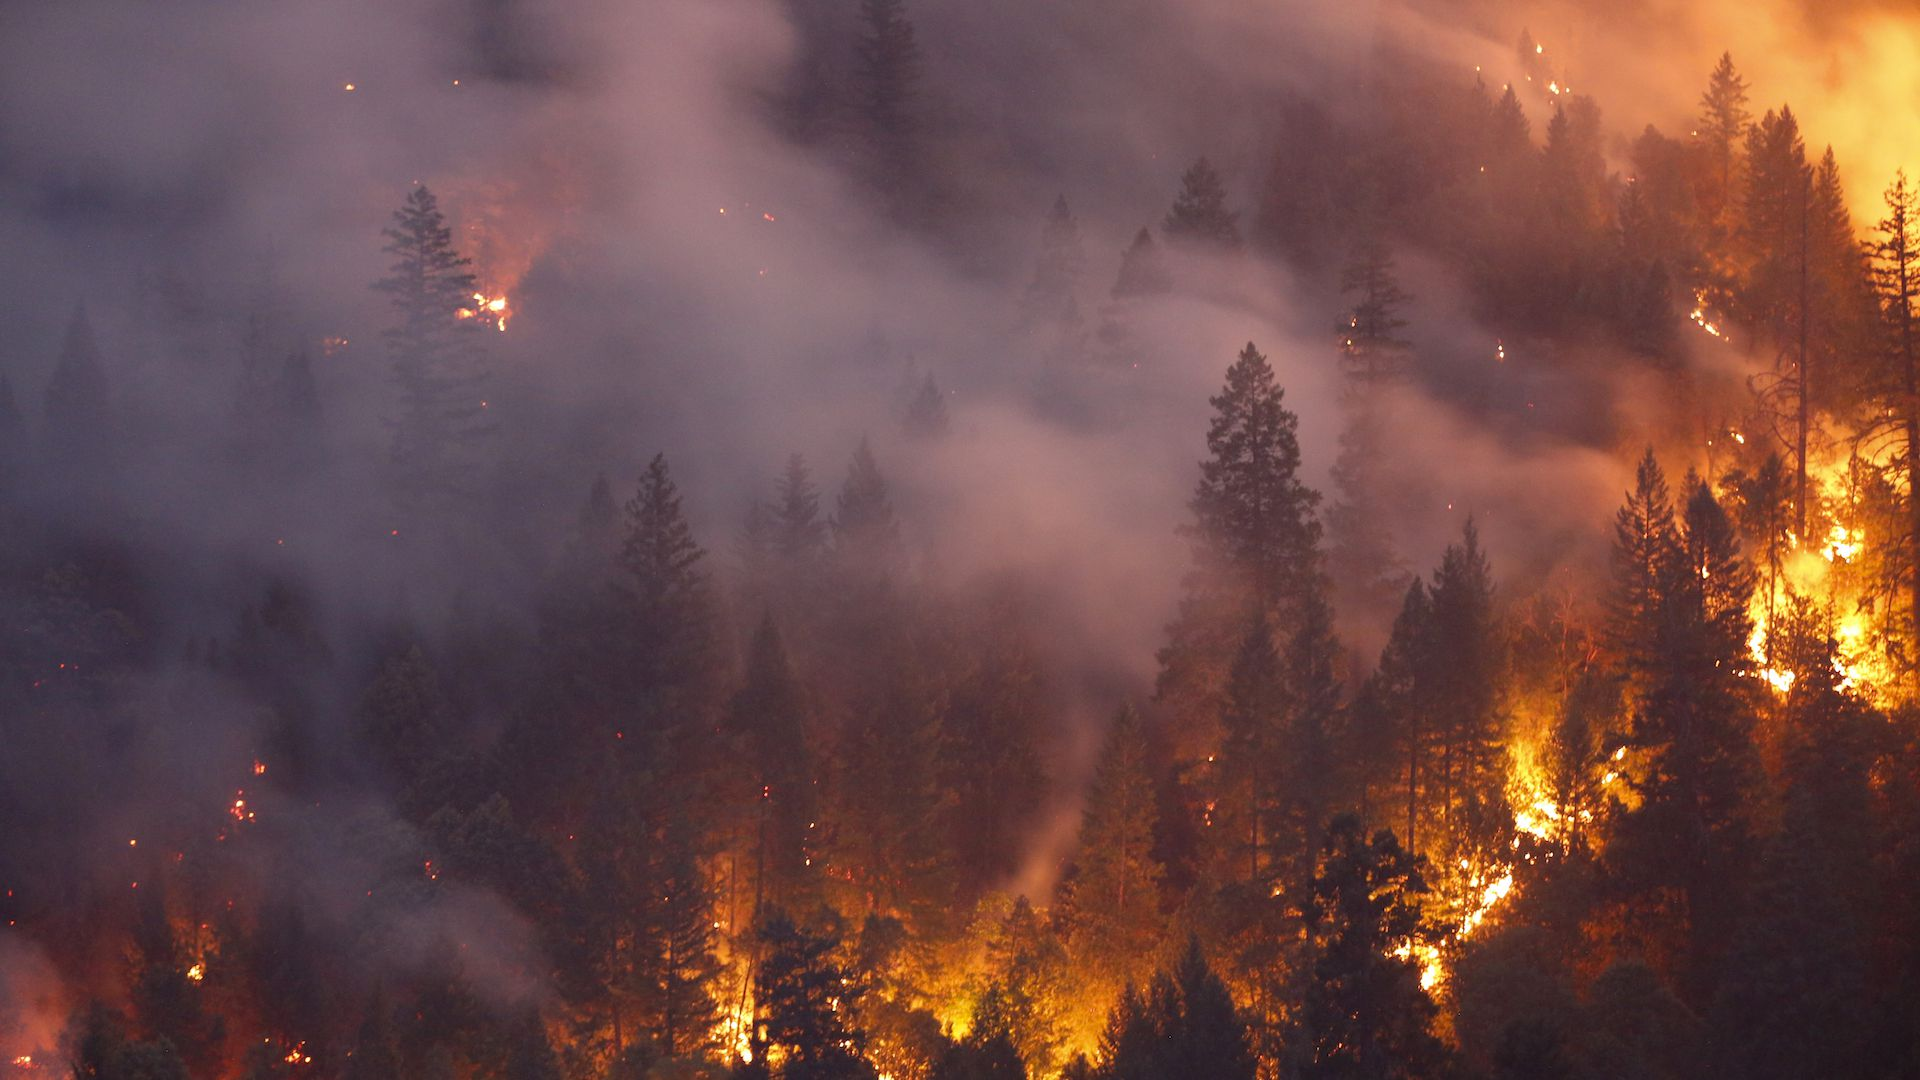 Flames from the Carr Fire burn a mountainside near Redding, California.